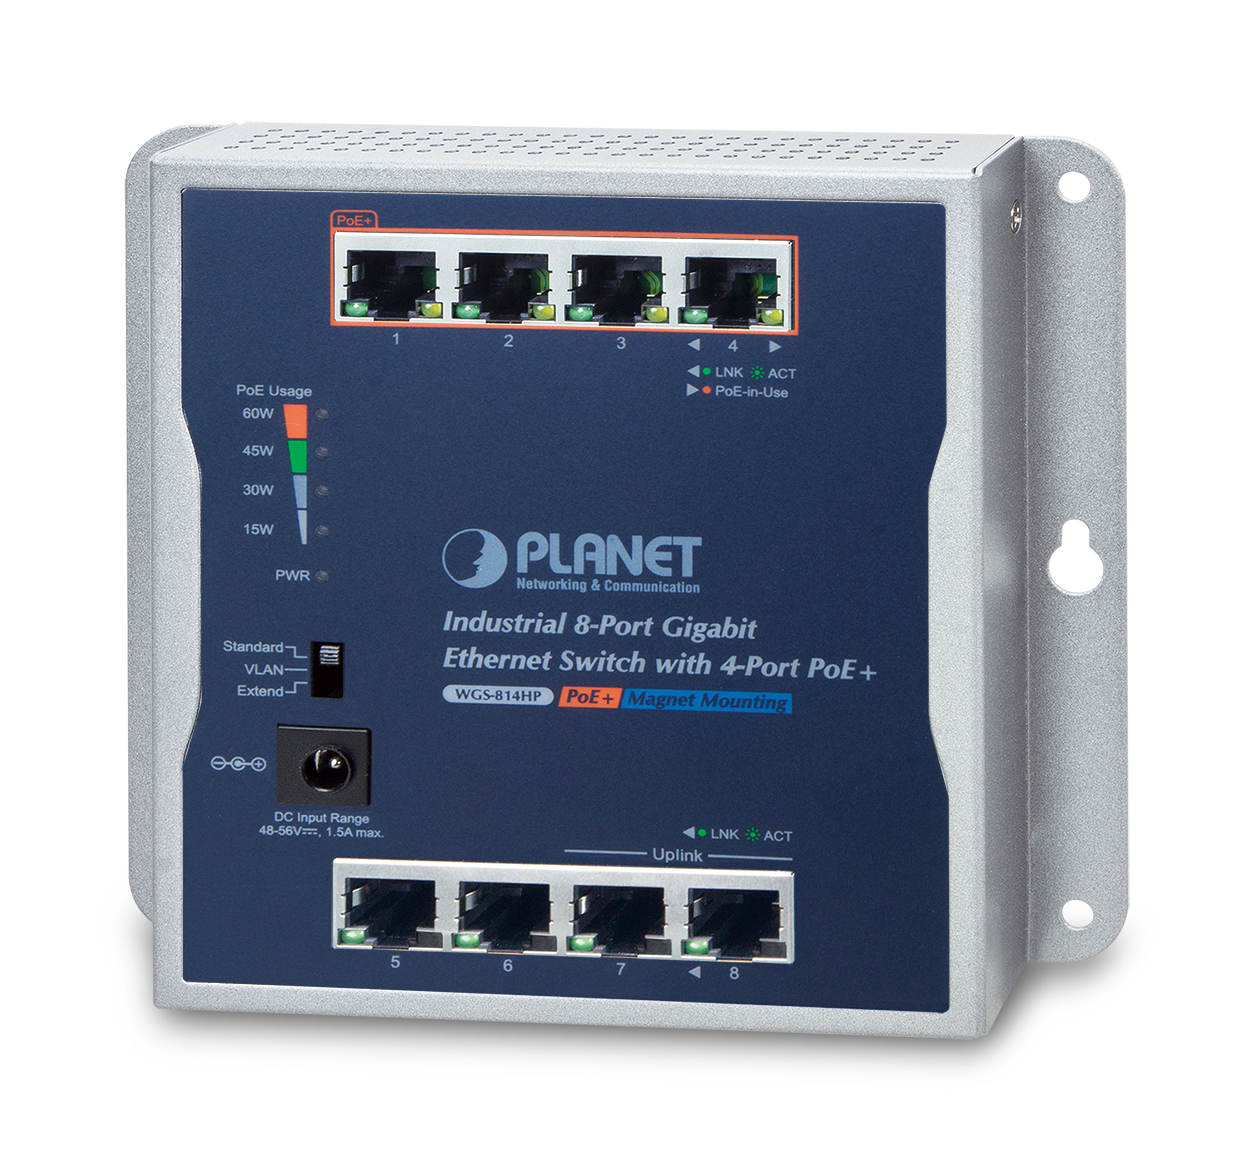 WGS-814HP -- Industrial 8-Port 10/100/1000T Wall-mounted Gigabit Switch with 4-port PoE+